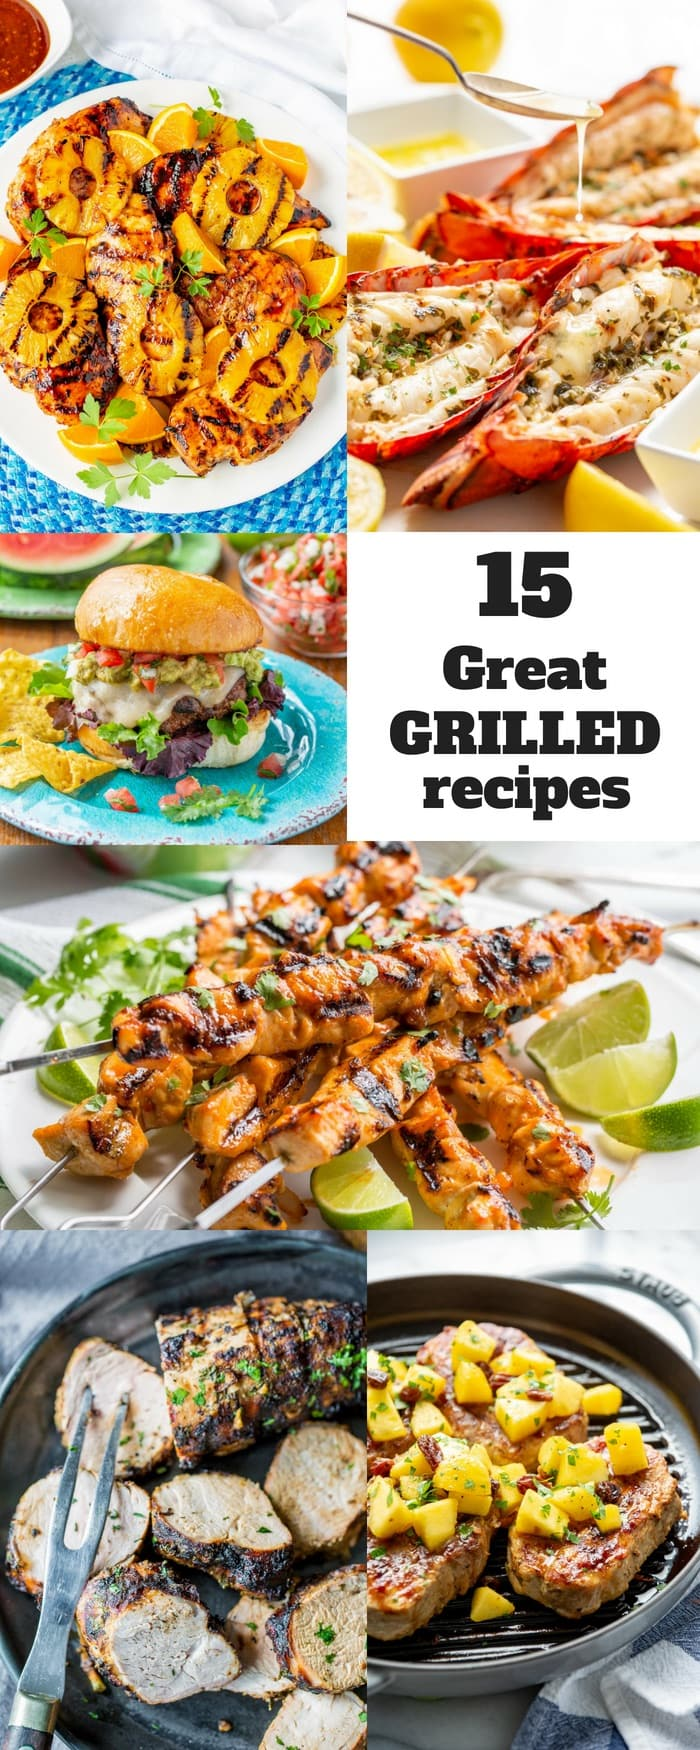 You can never really have enough Great Grilled Recipes! Here are some of our favorites for you to try this summer. From chicken and fish, to pork, beef and even vegetables, we've got you covered! #savingroomfordessert #grilled #grilling #grill #grilledchicken #grilledfish #grilledseafood #grilledpork #grilledbeef #grilledportobello #burgers